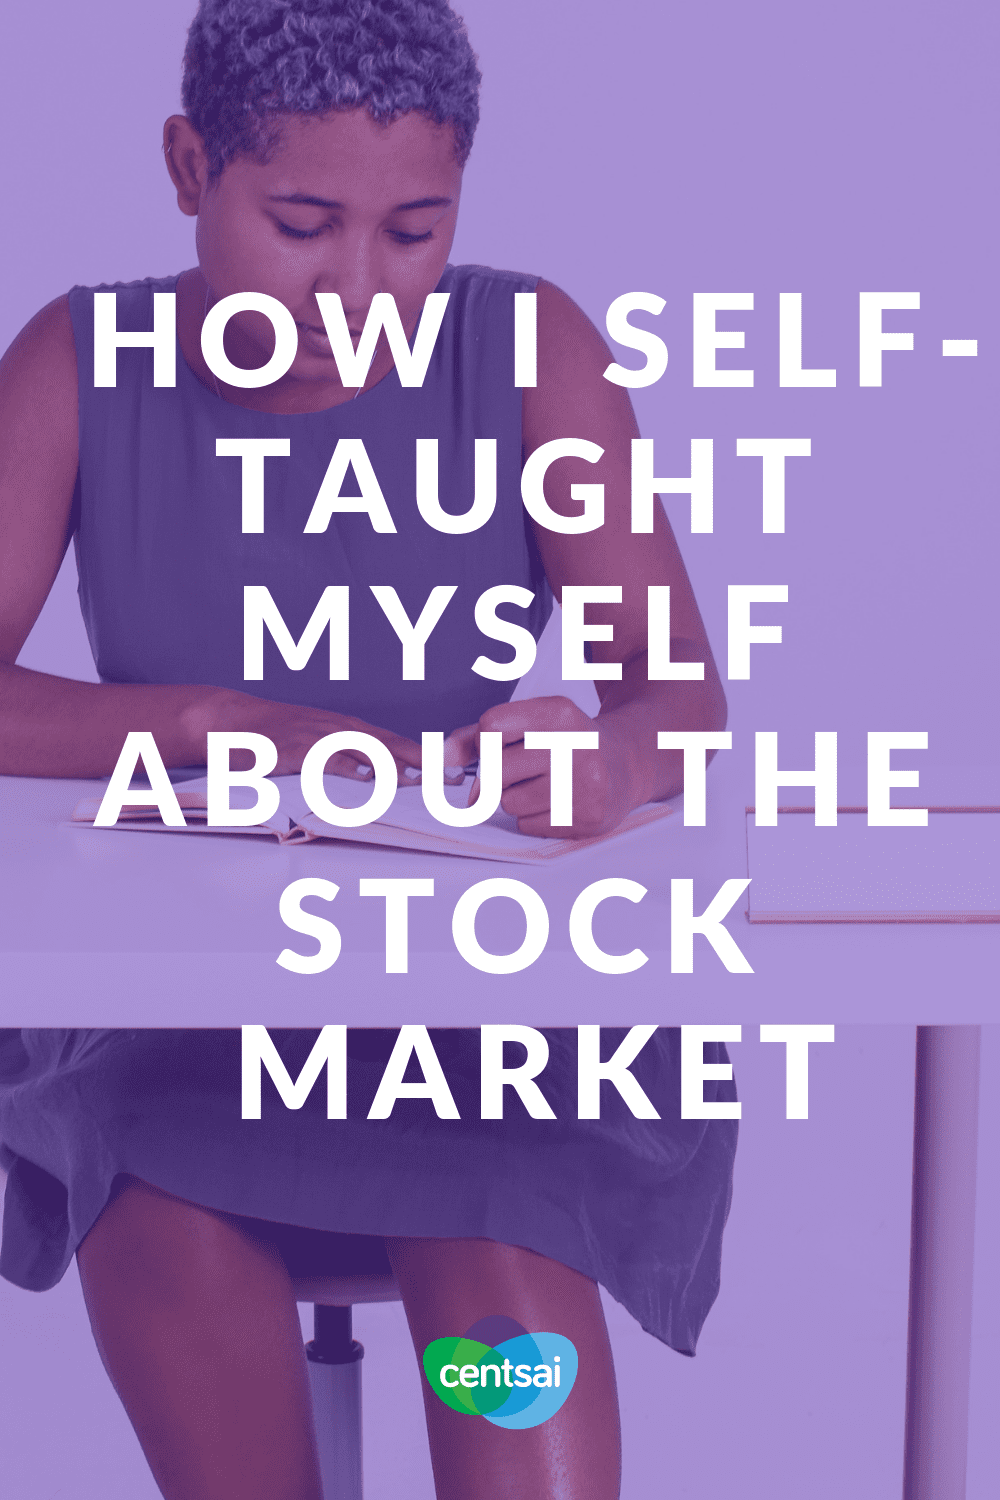 How I Self-Taught Myself About the Stock Market. Does trying to invest make your head hurt? Resources like the Motley Fool can help you with understanding the stock market. #CentSai #investment #stockmarket #makemoremoney